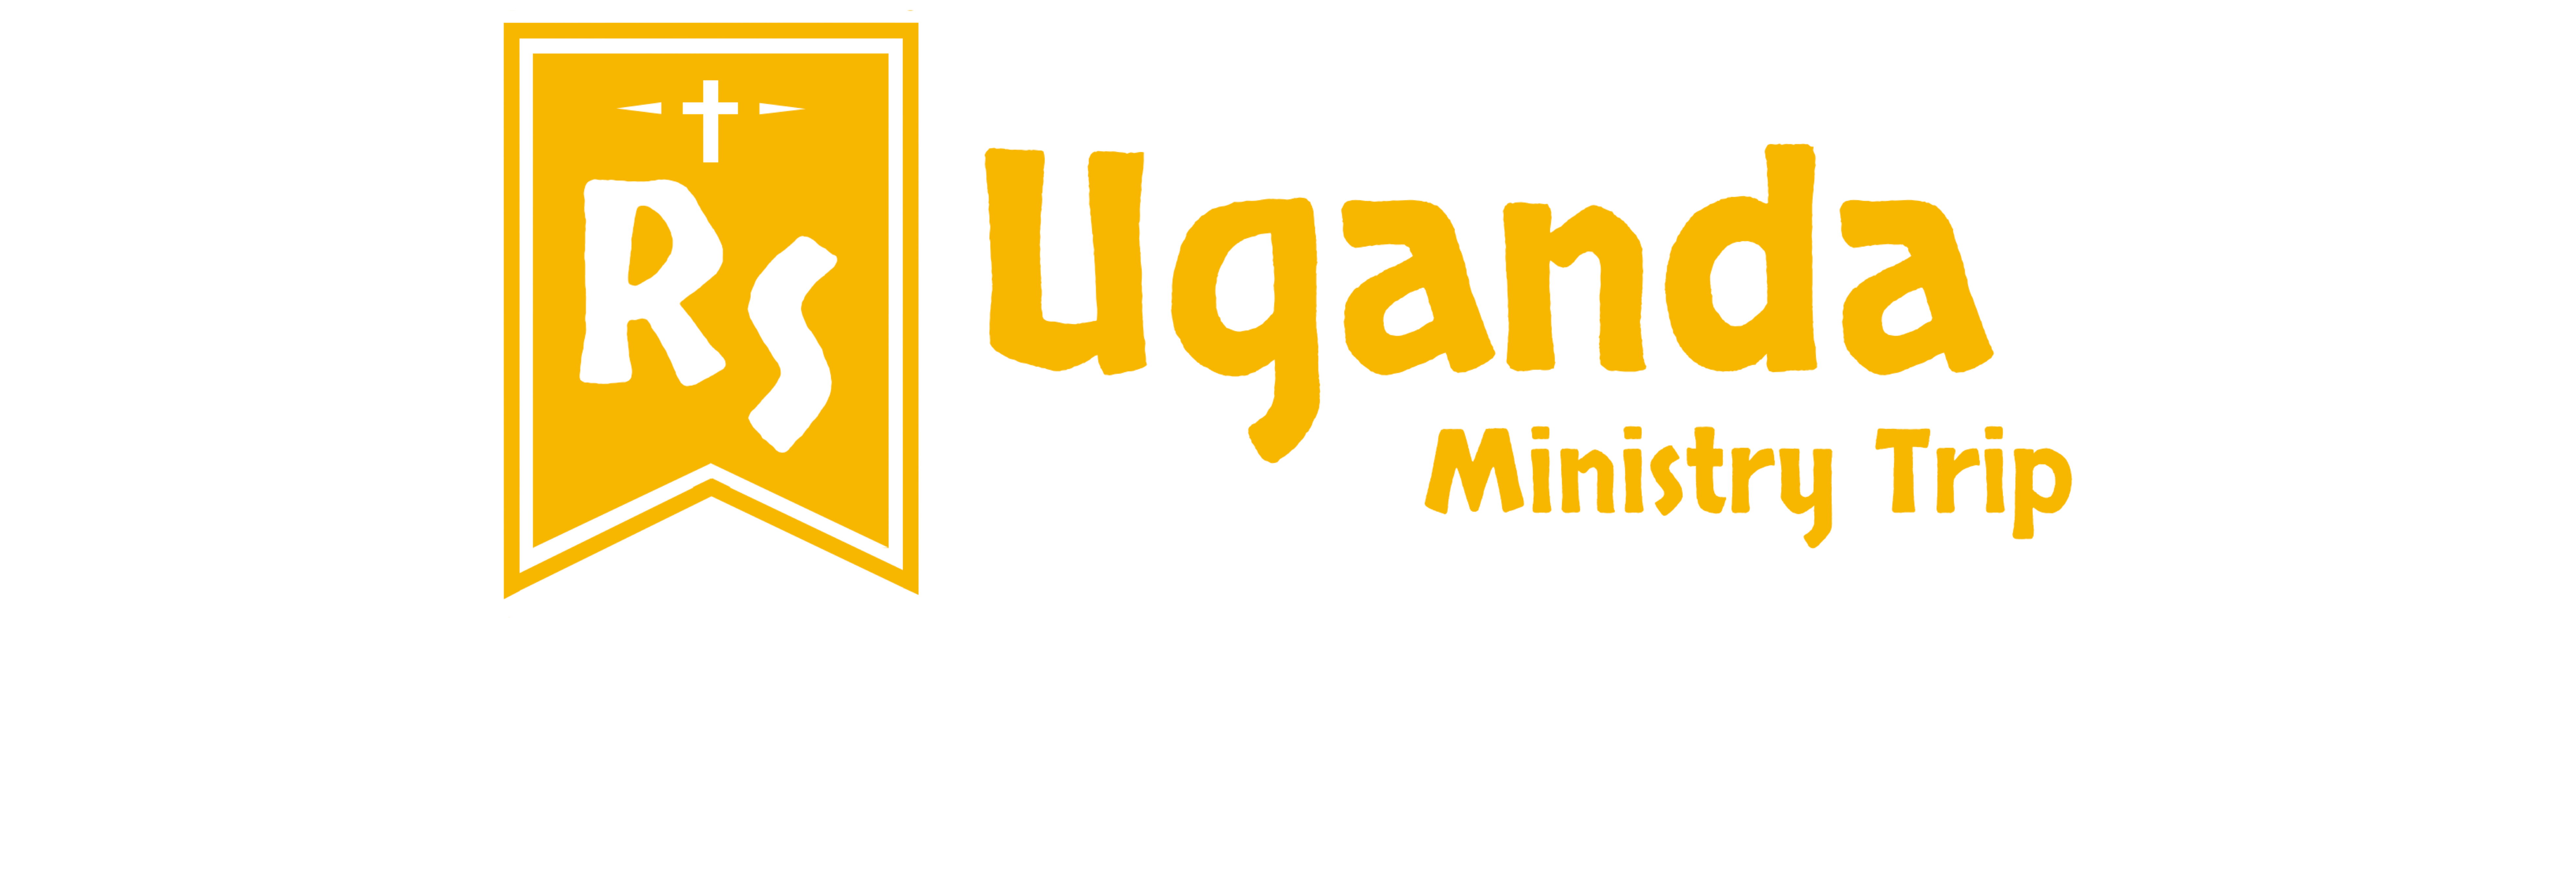 Posts tagged with Ministry Trip banner